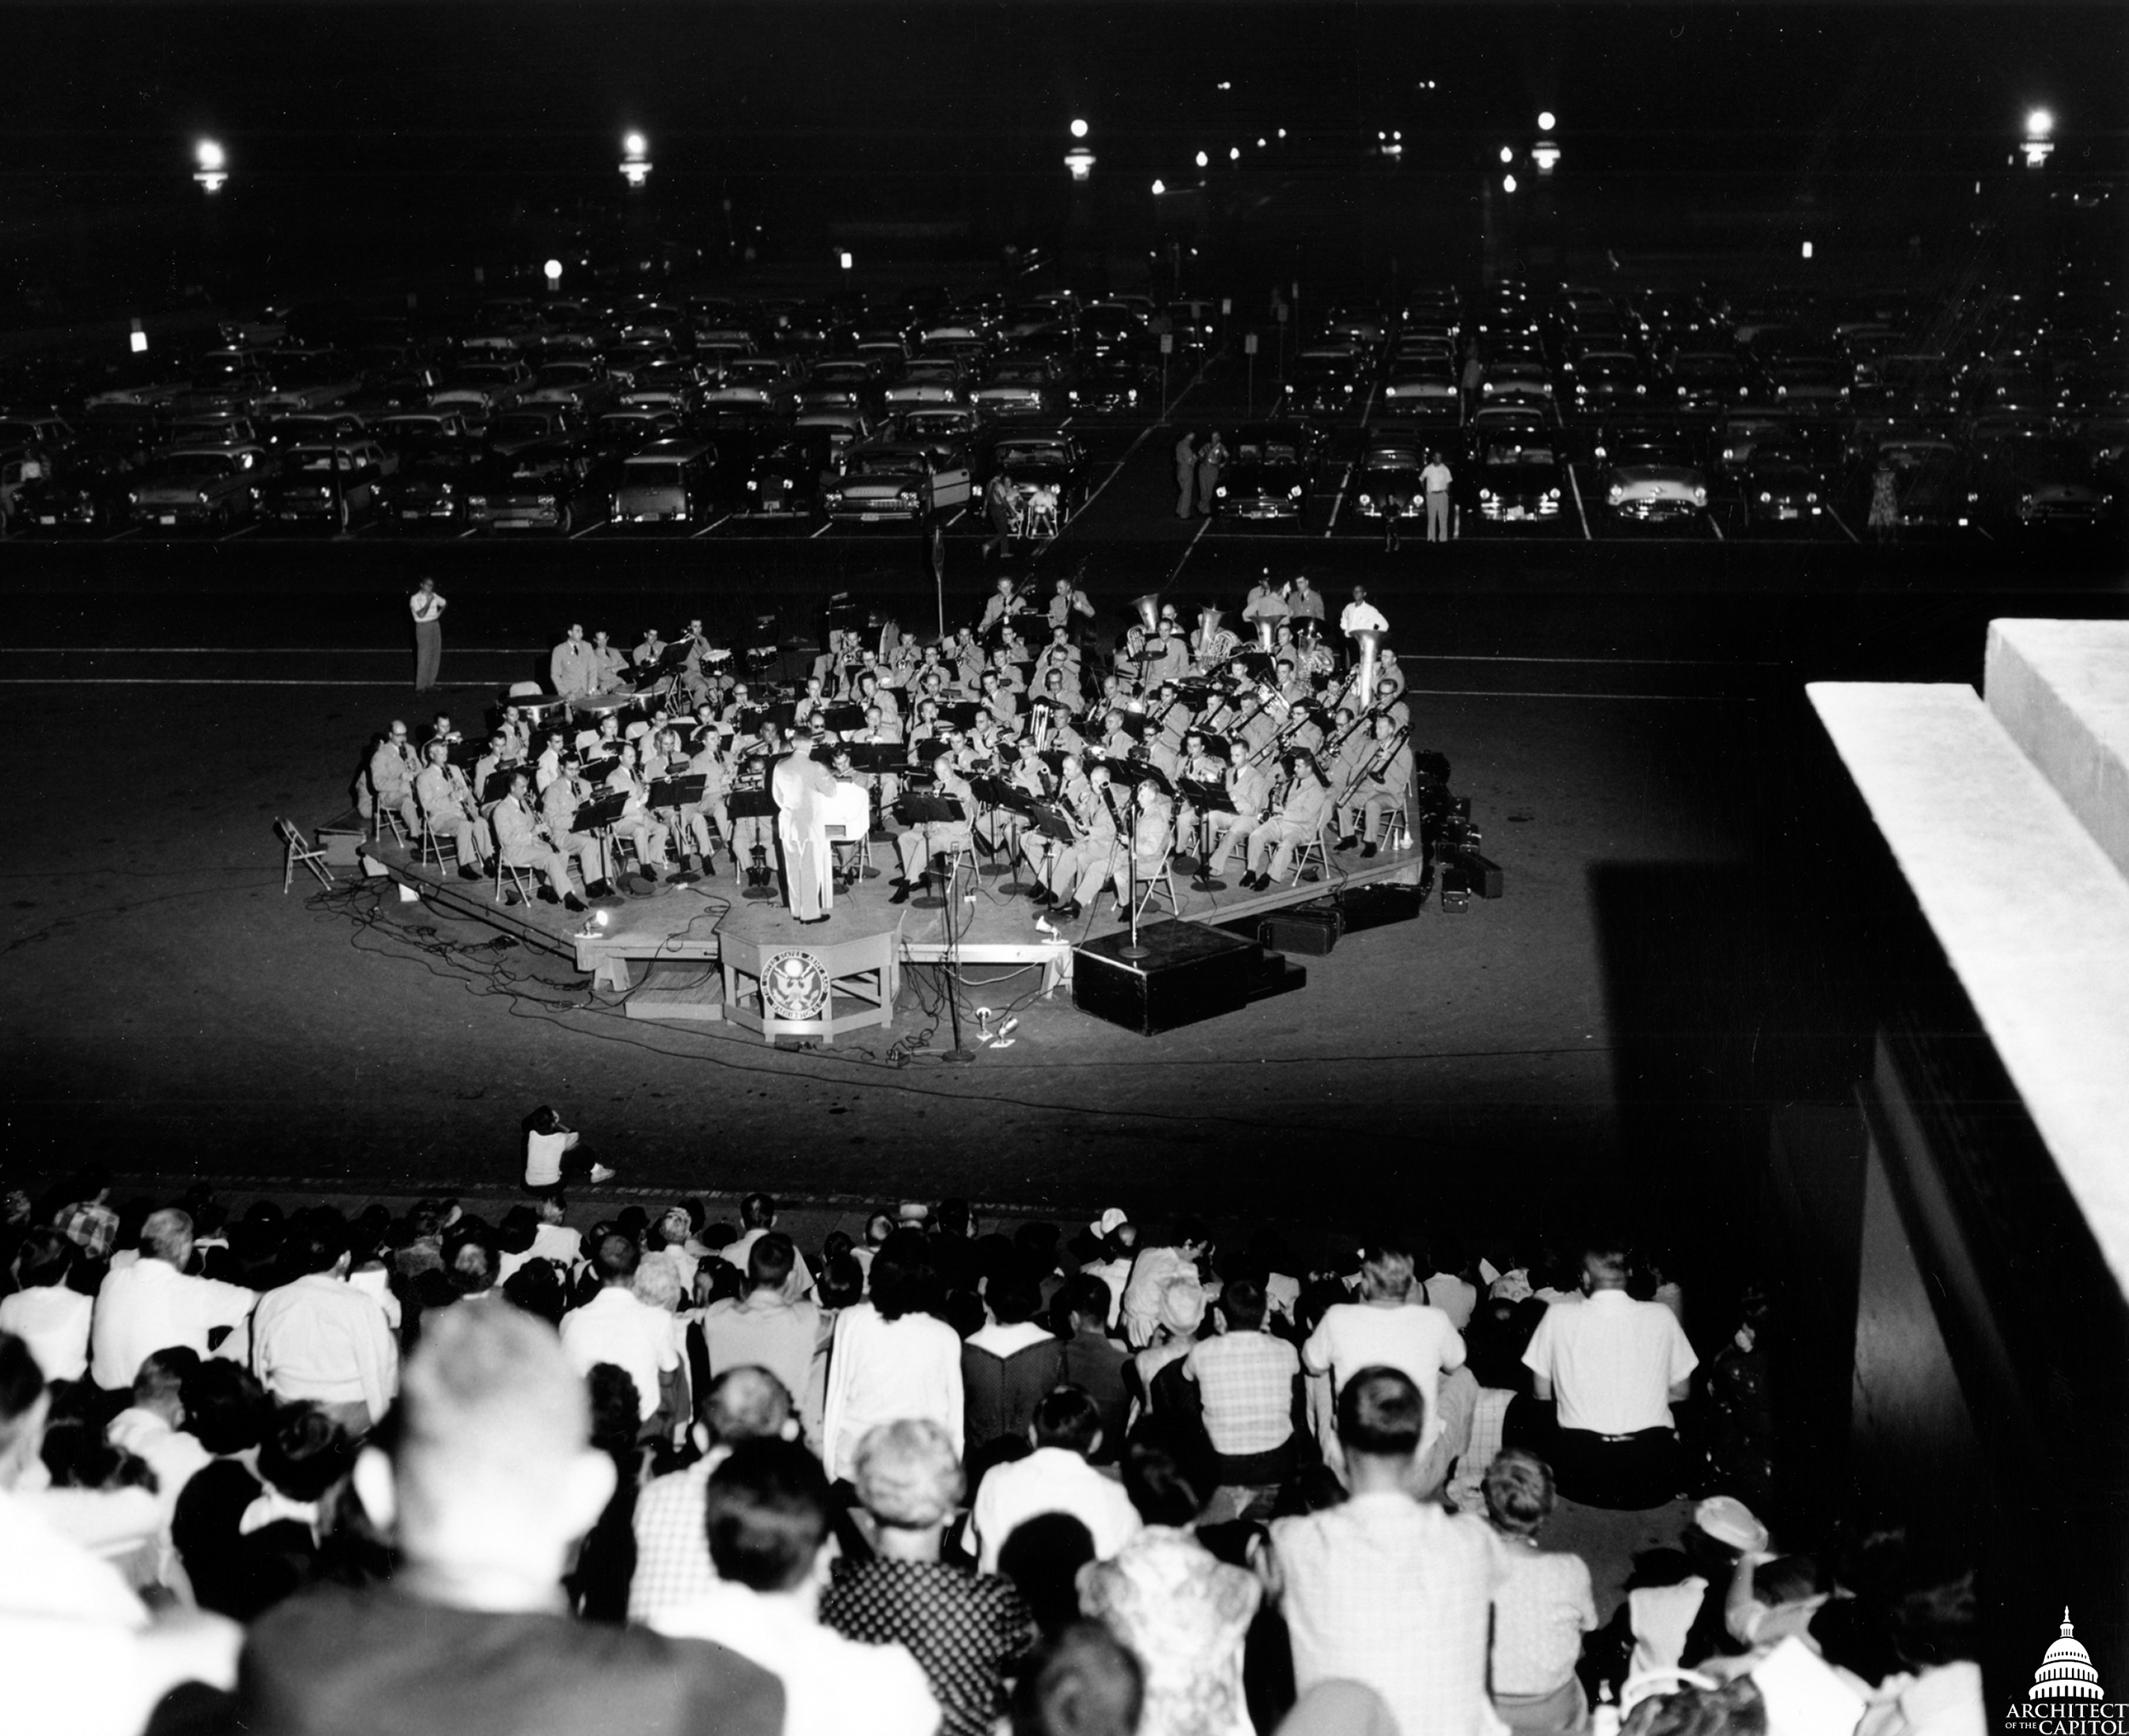 The last band concert on the Capitol's East Front in 1958 before construction of the extension.